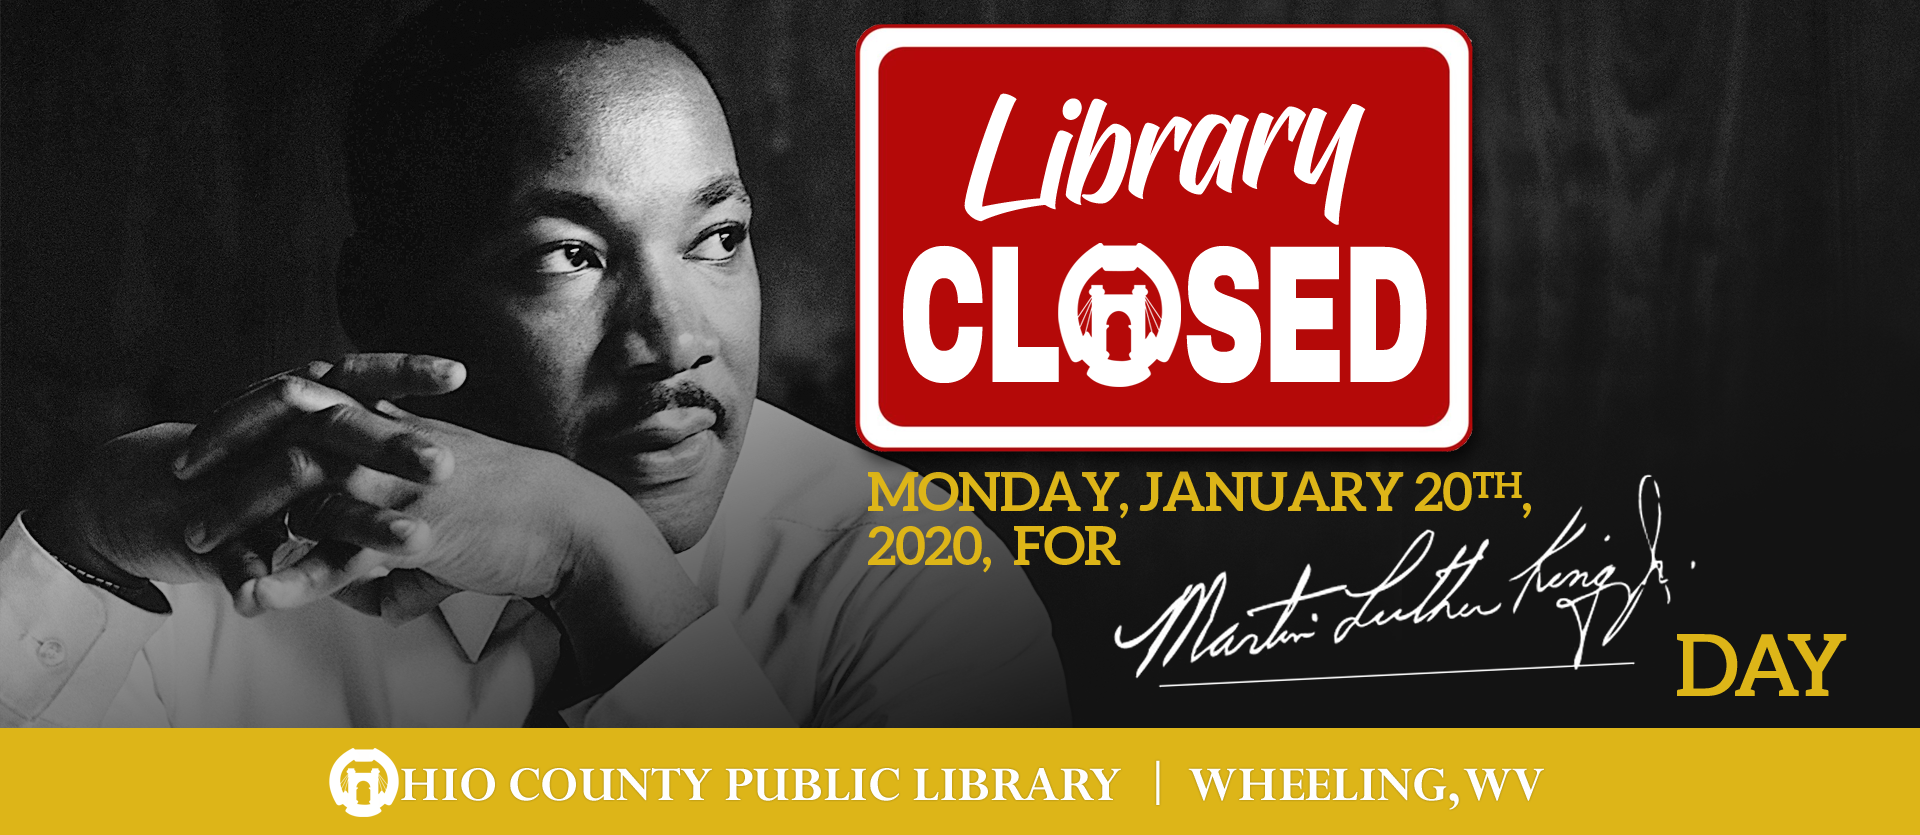 The Library will be closed Monday, Jan. 20, 2020, for Martin Luther King Jr. Day.